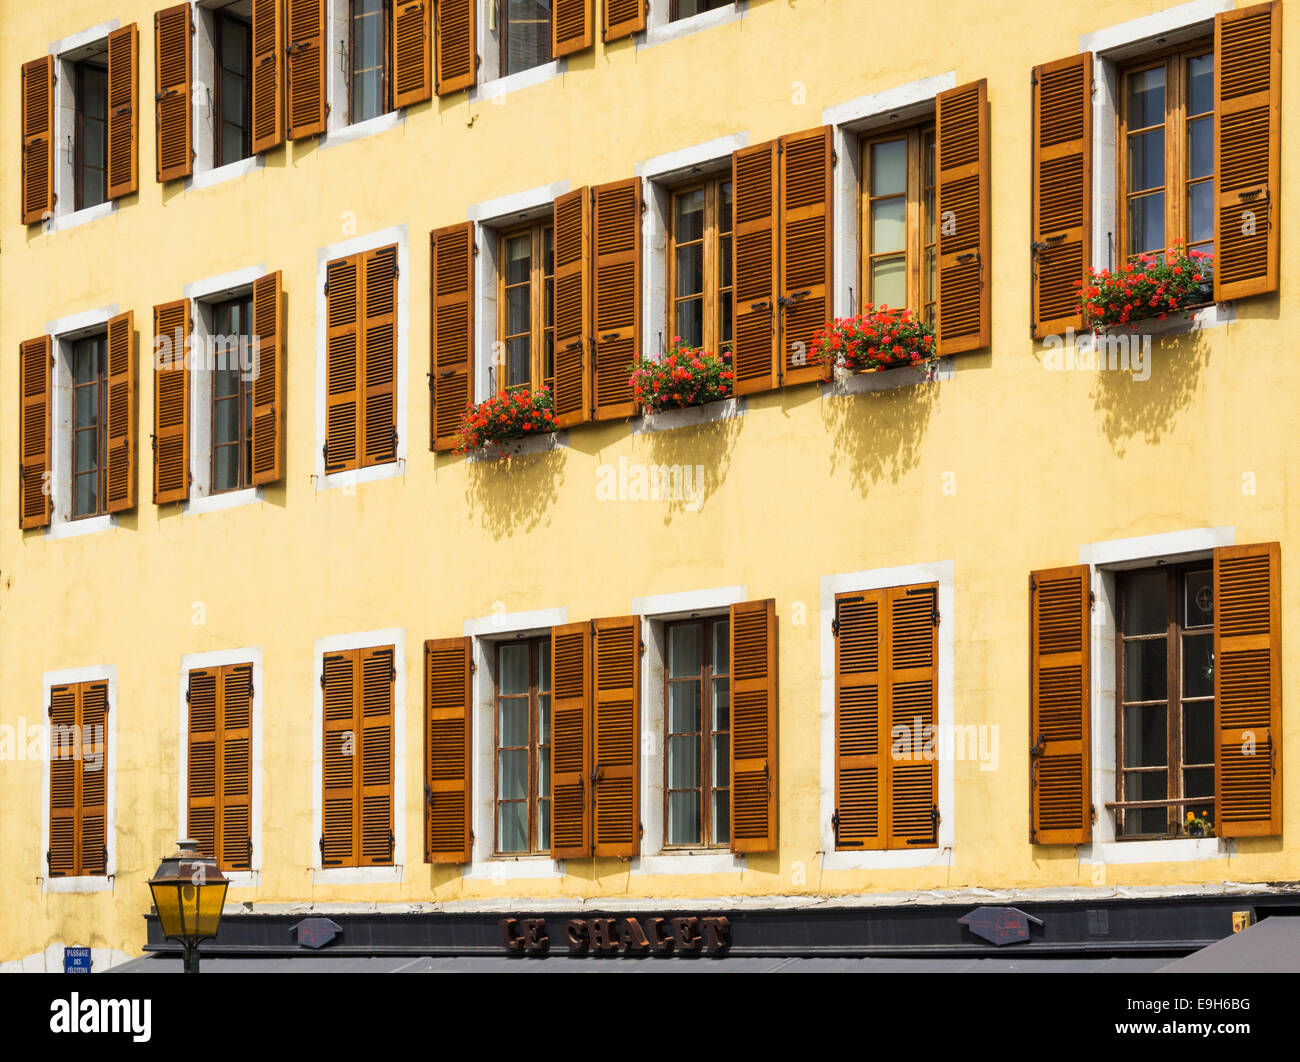 Row of shuttered windows on apartments in a French city - Stock Image